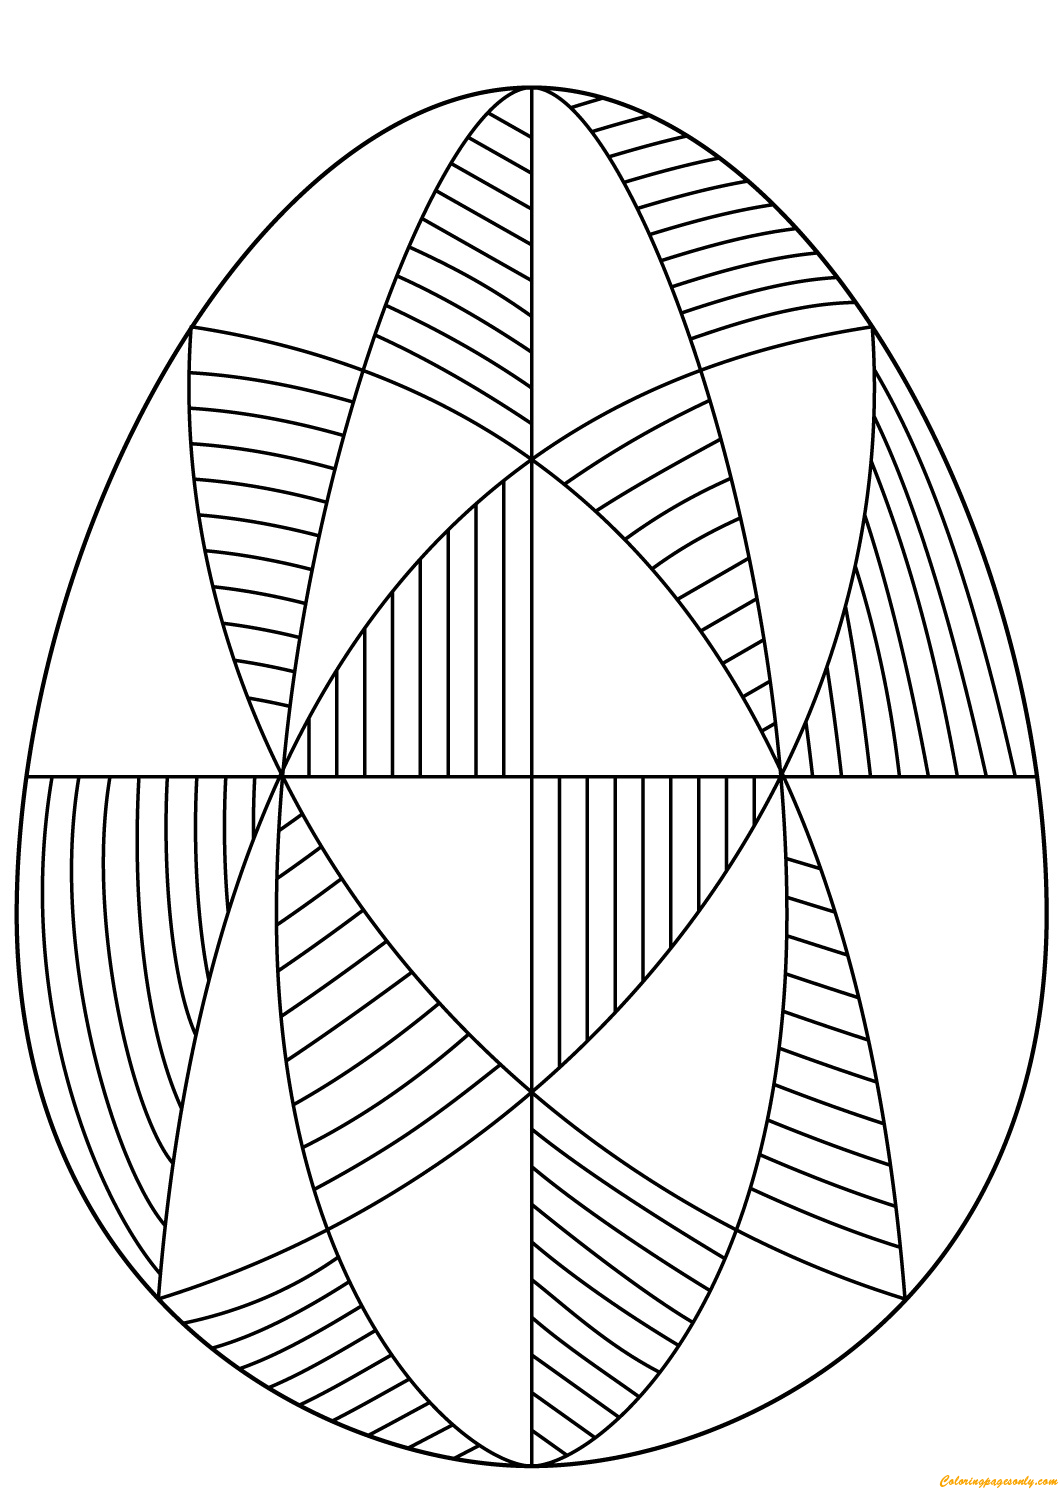 Decorative Easter Egg Spiral Pattern Coloring Pages Arts Culture Coloring Pages Free Printable Coloring Pages Online